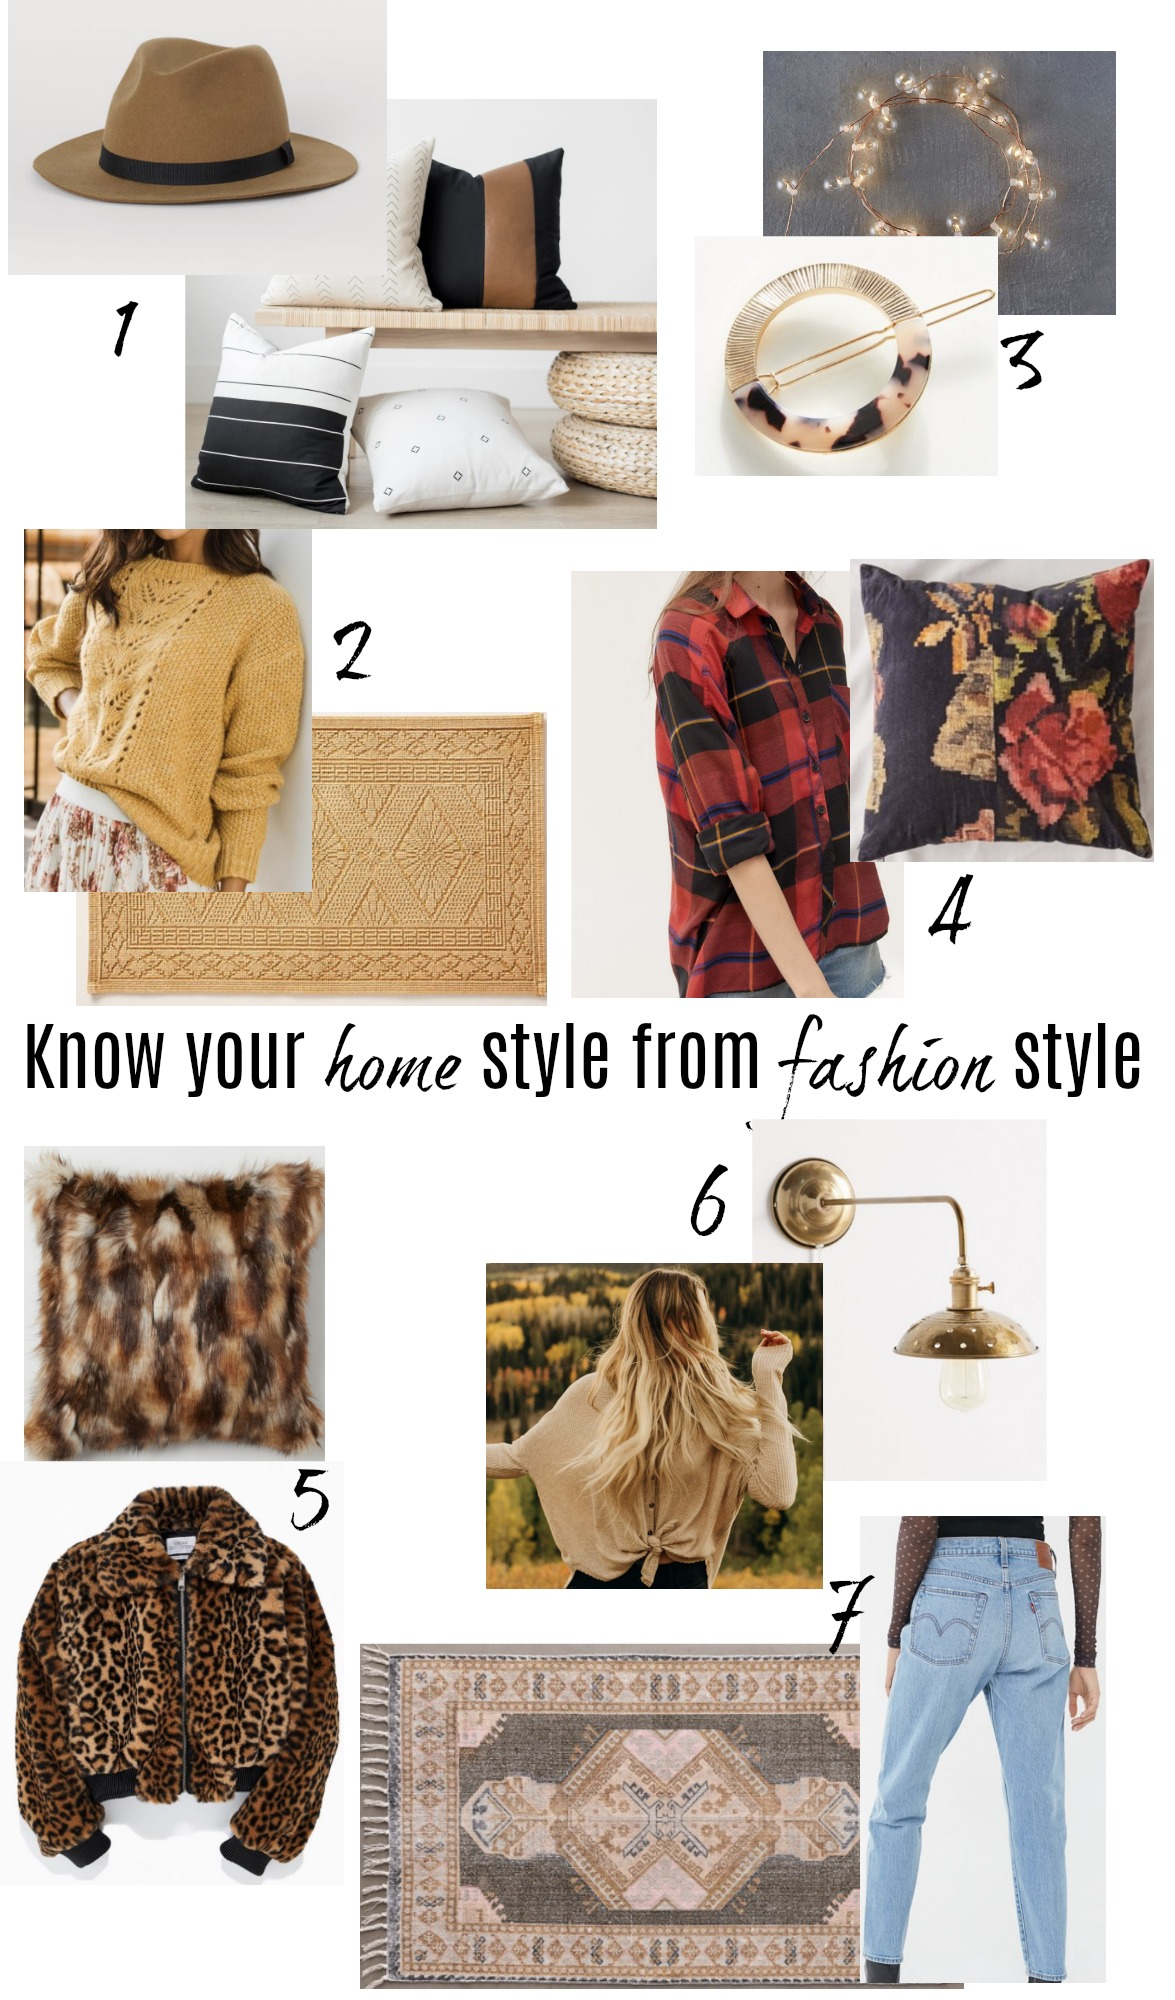 How to KNOW Your Home Style from your Fashion Style